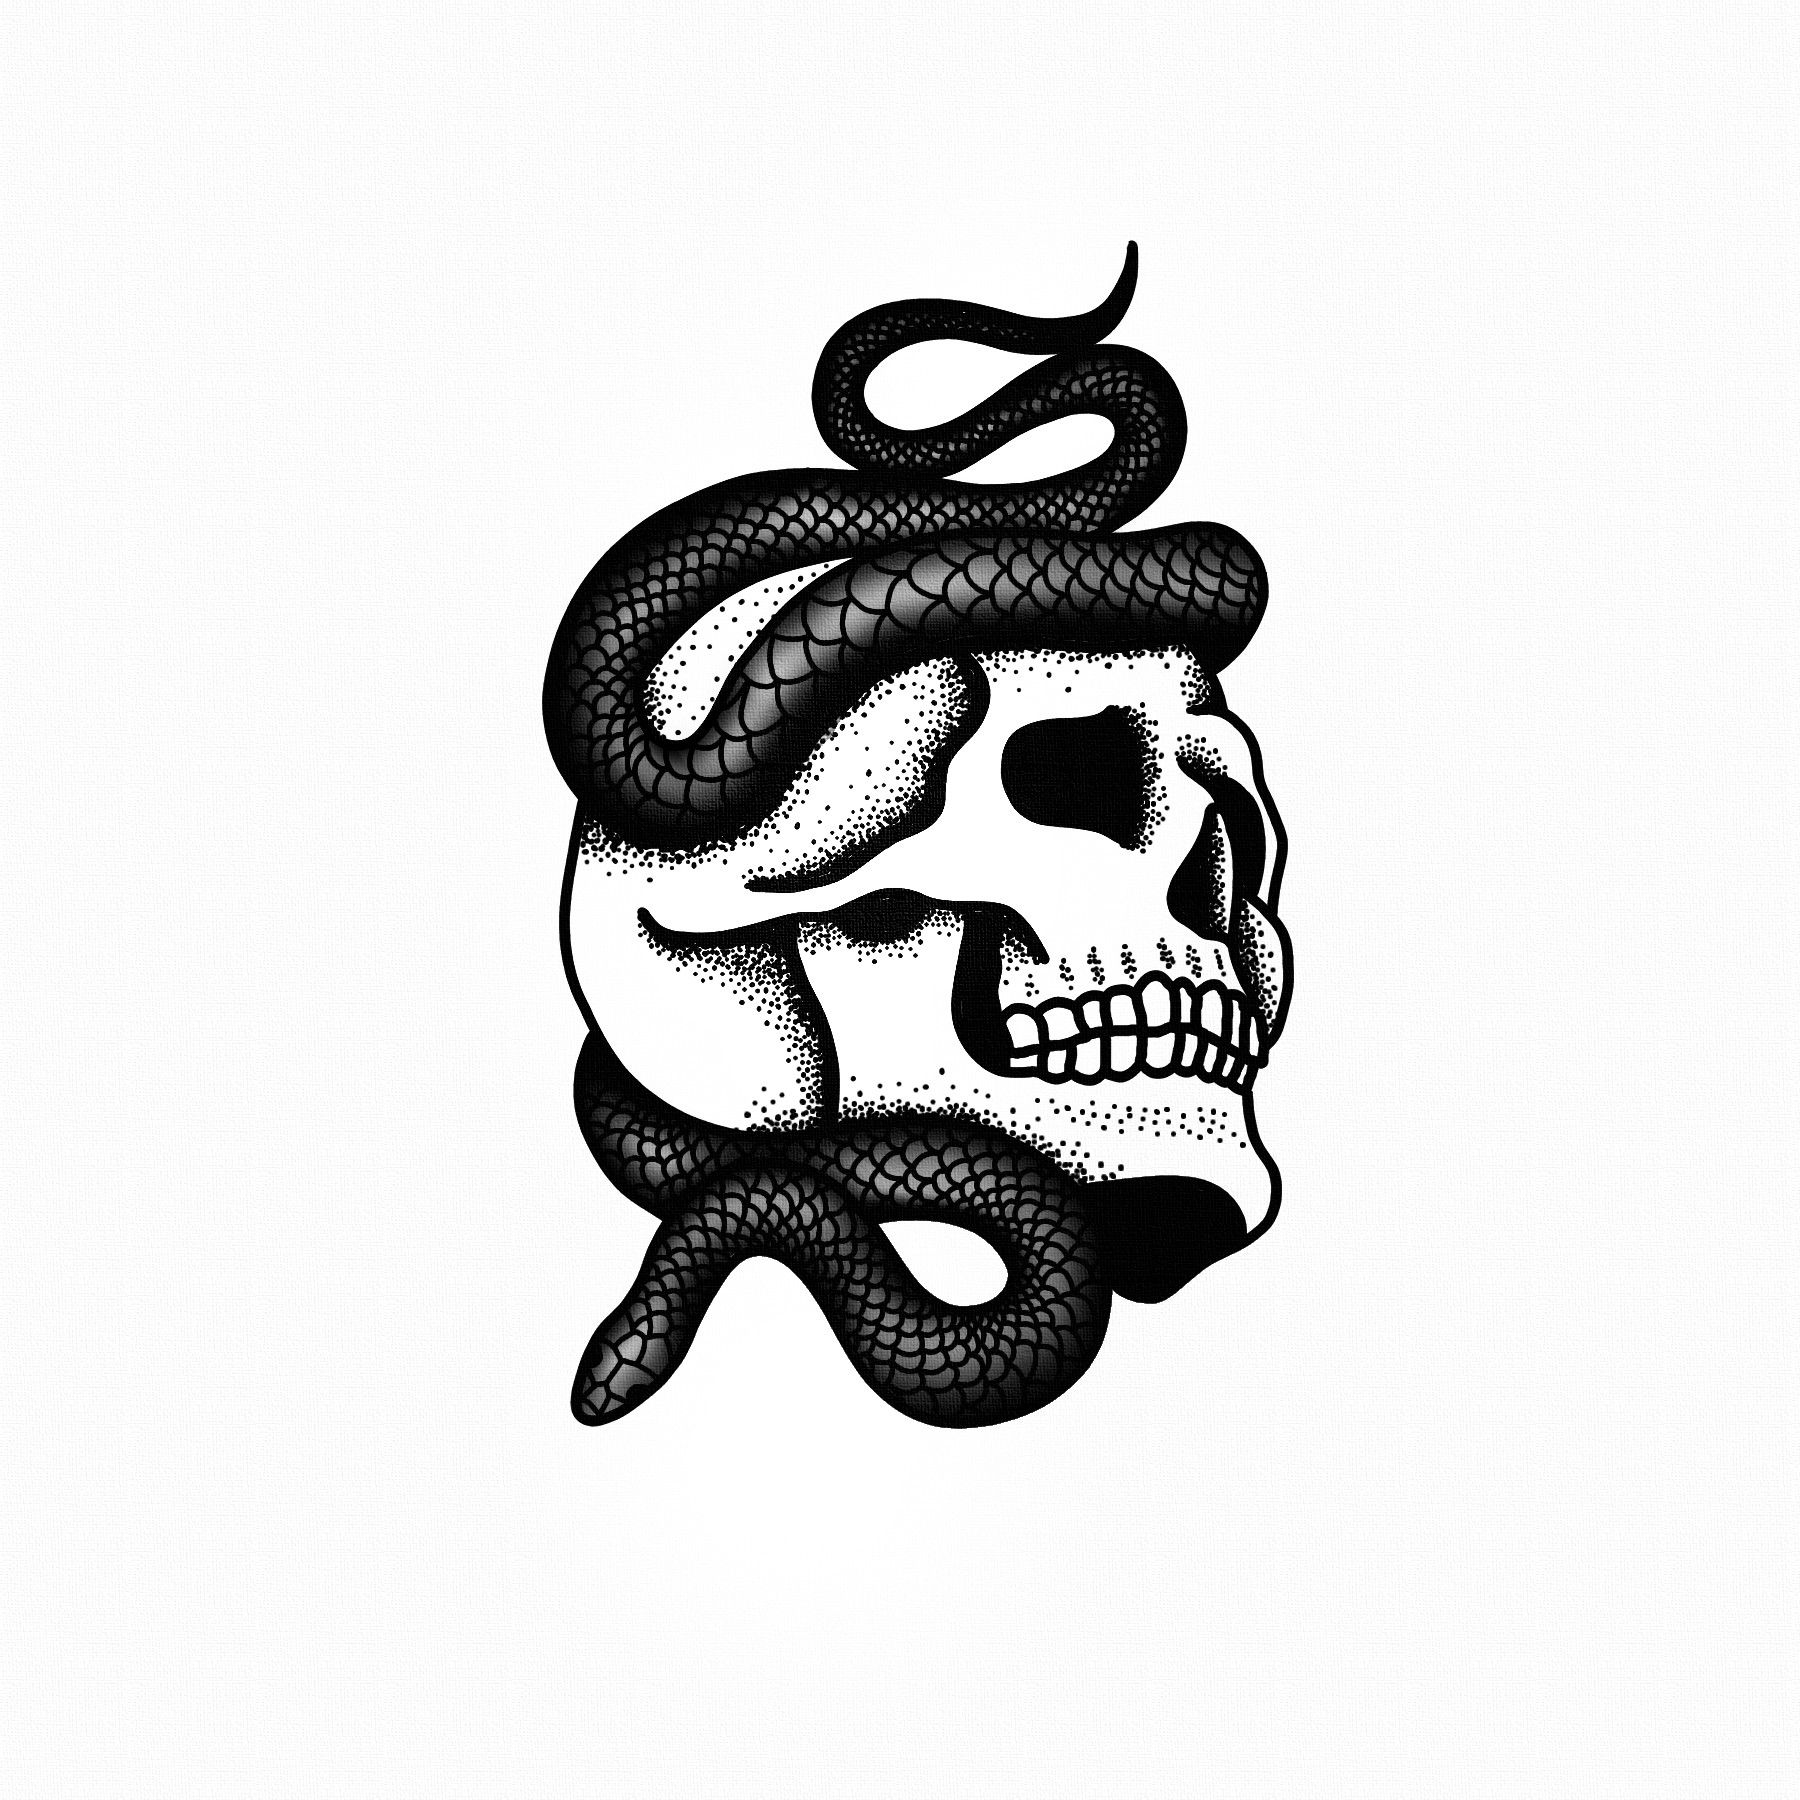 Illustration Tattoos: STANLEY DUKE Tattoo Illustration Blackwork Black Skull